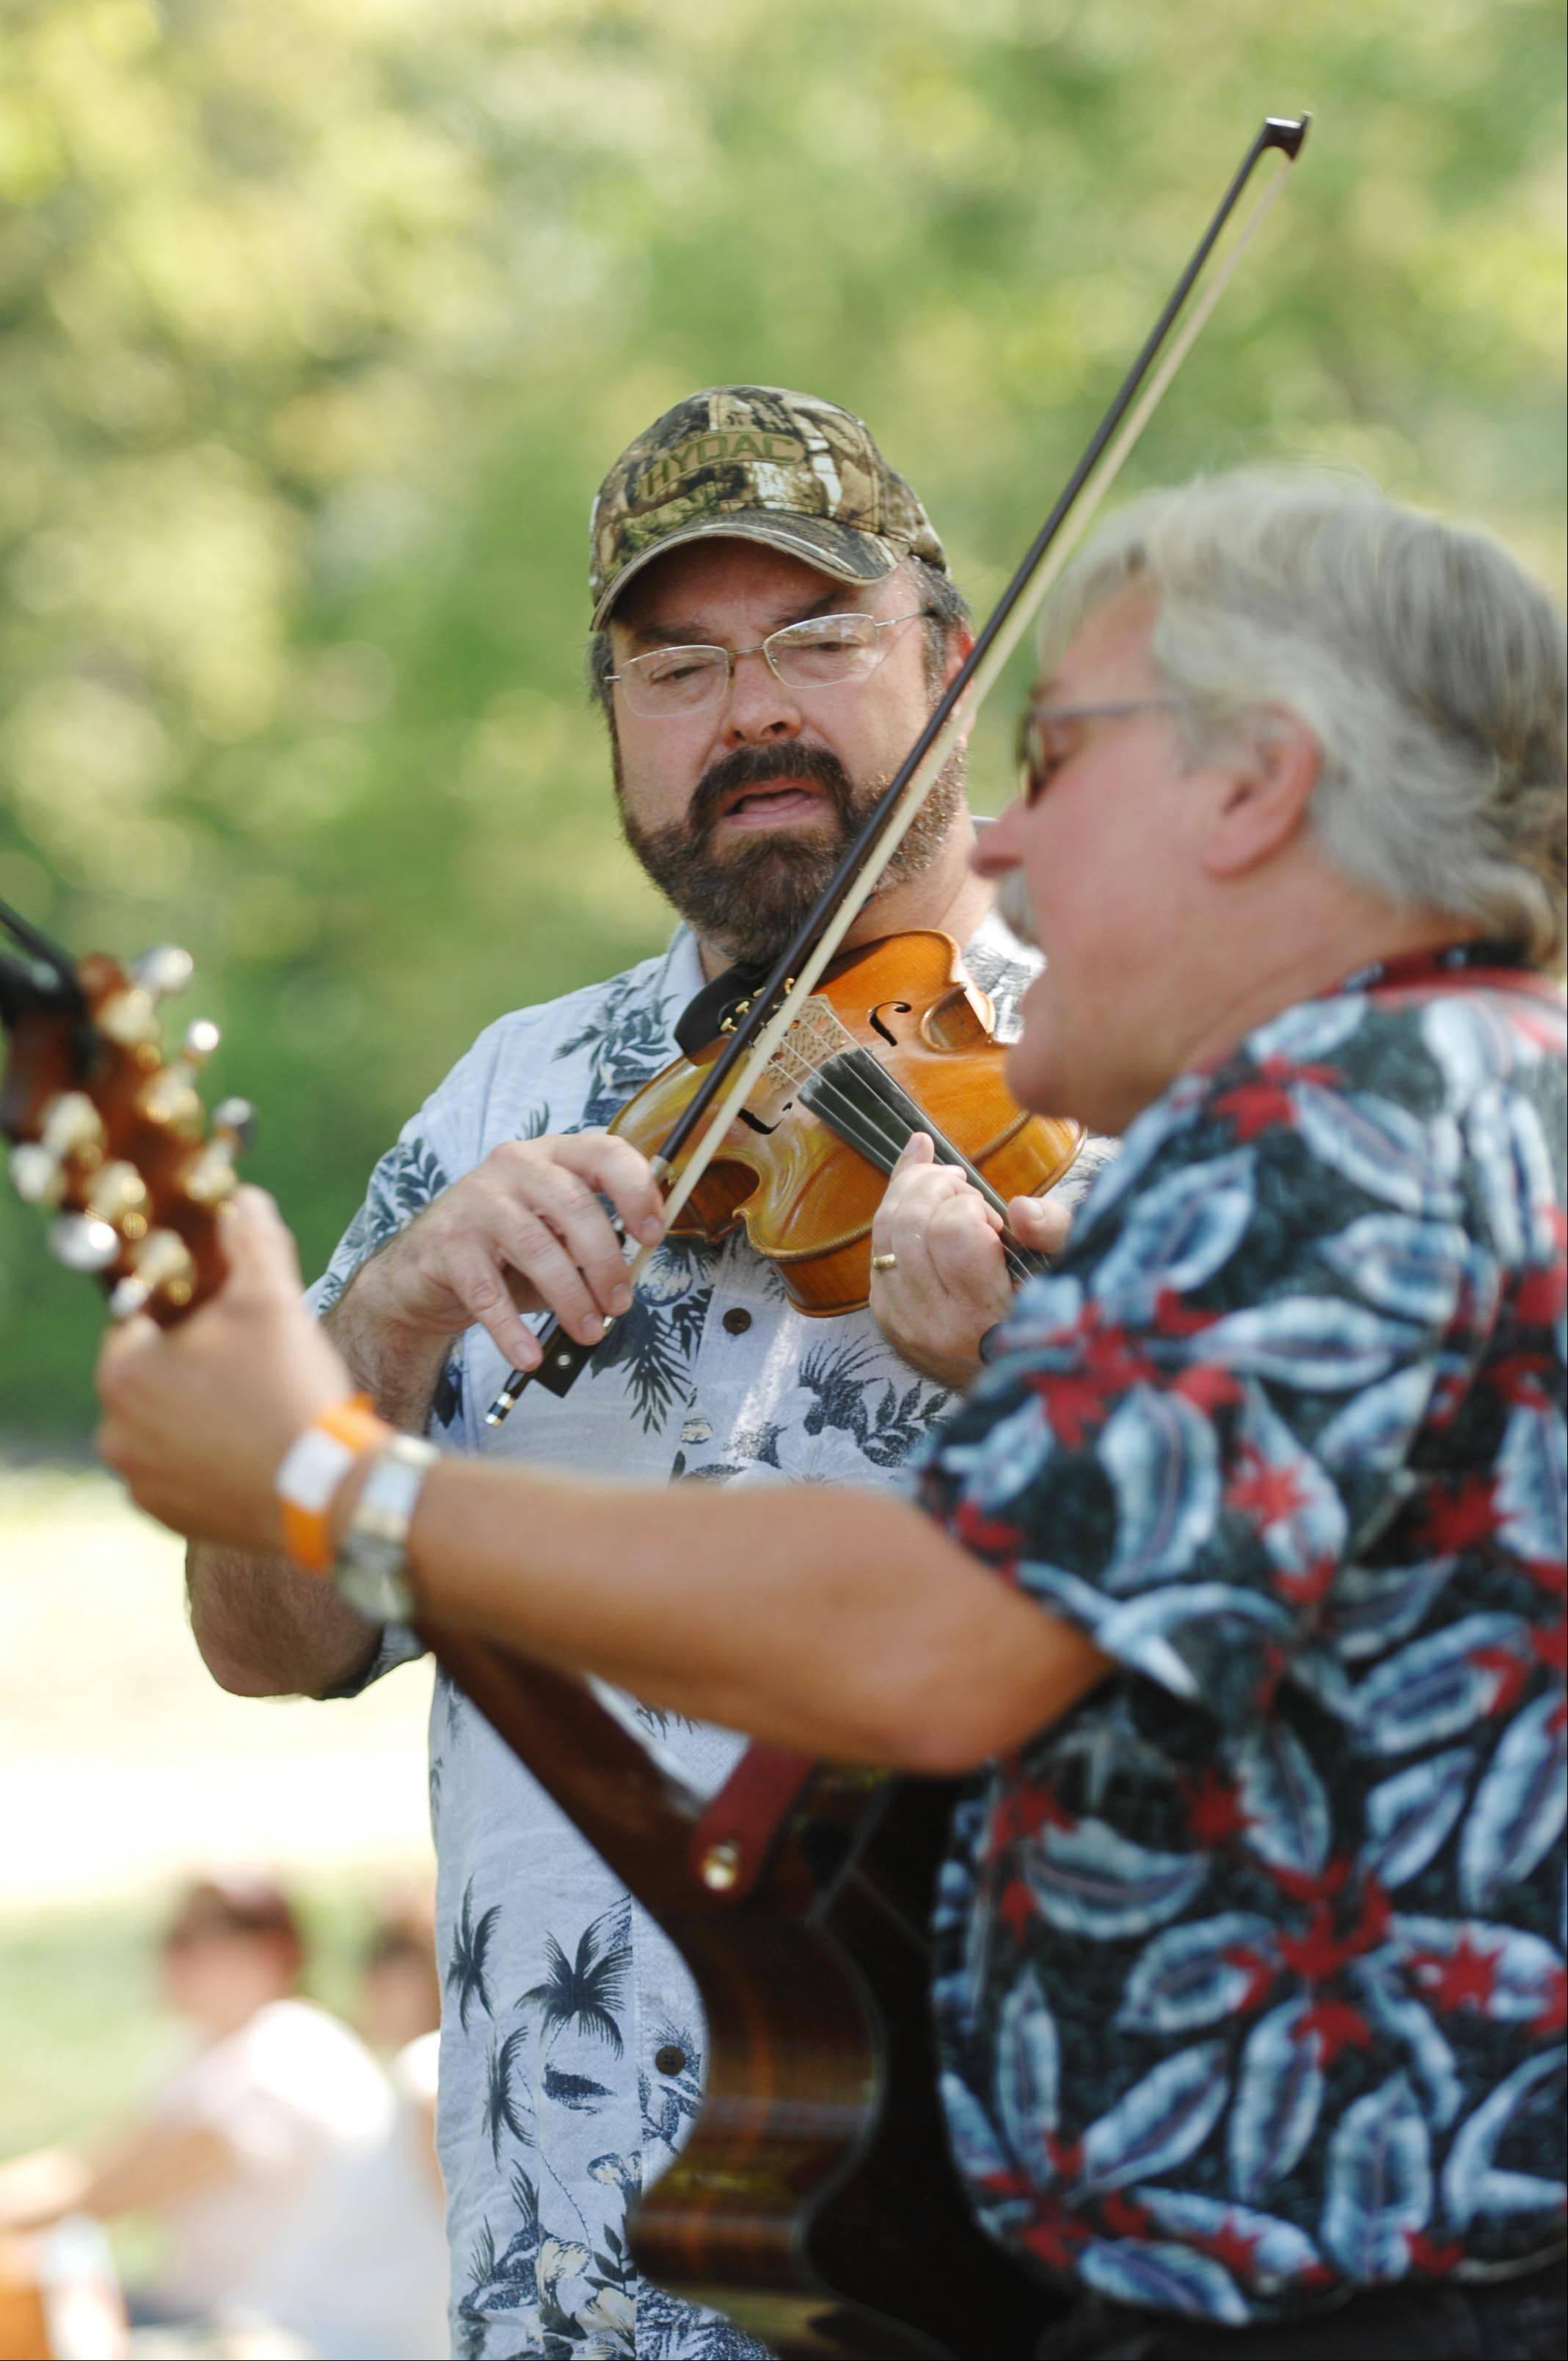 Ray Henaughan plays the fiddle with Dave Simpson of St. Charles on guitar in an impromptu jam by the Fox River at the 36th annual Fox Valley Folk Music and Storytelling Festival at Island Park in Geneva. More than 120 performers are expected at this weekend's show.